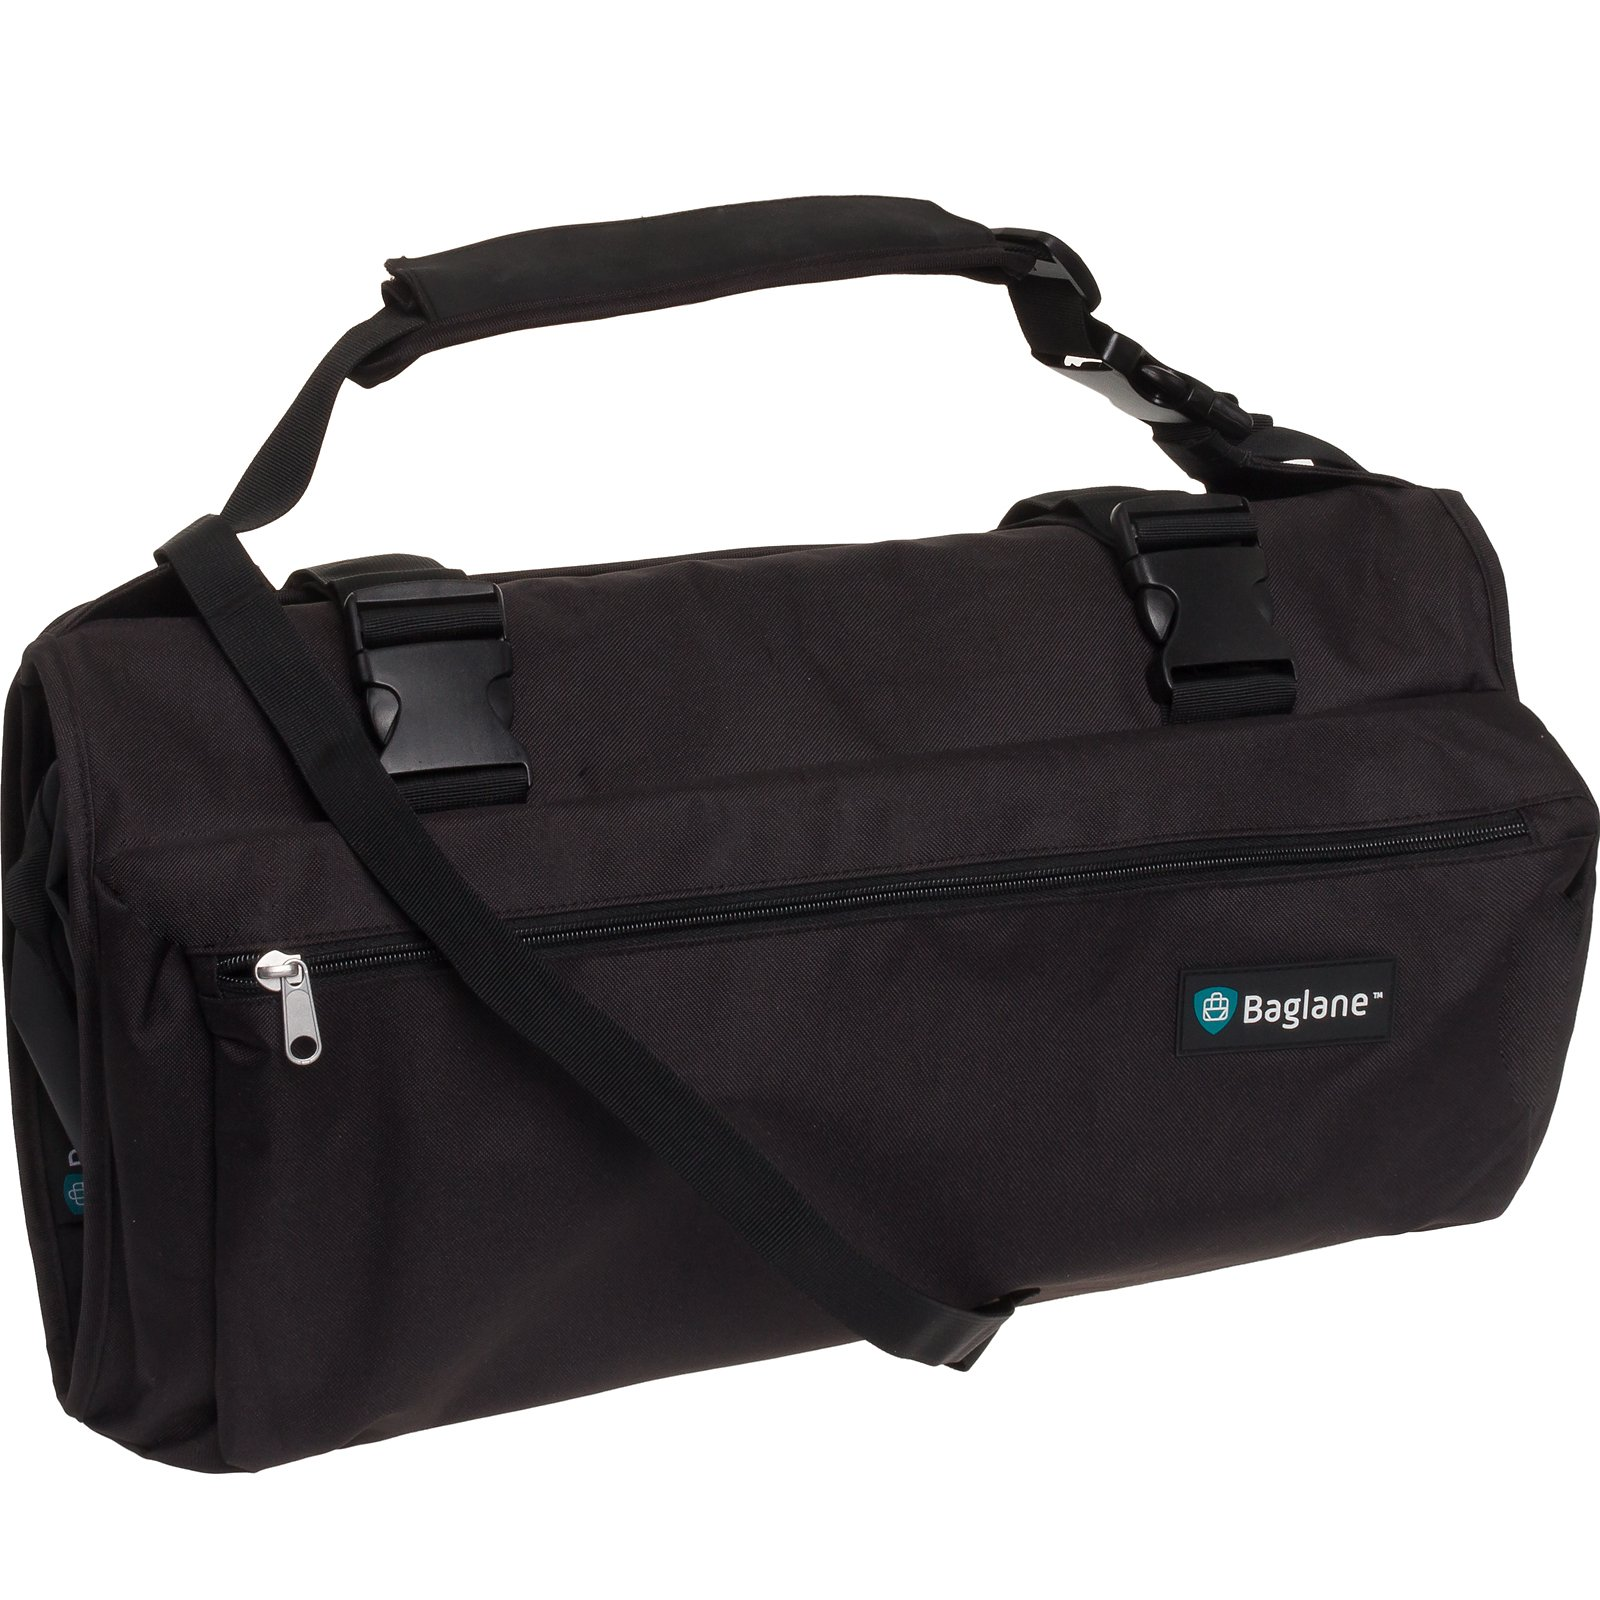 BagLane Garment Suit Bag - Travel Carry On Garment Bag (Black)